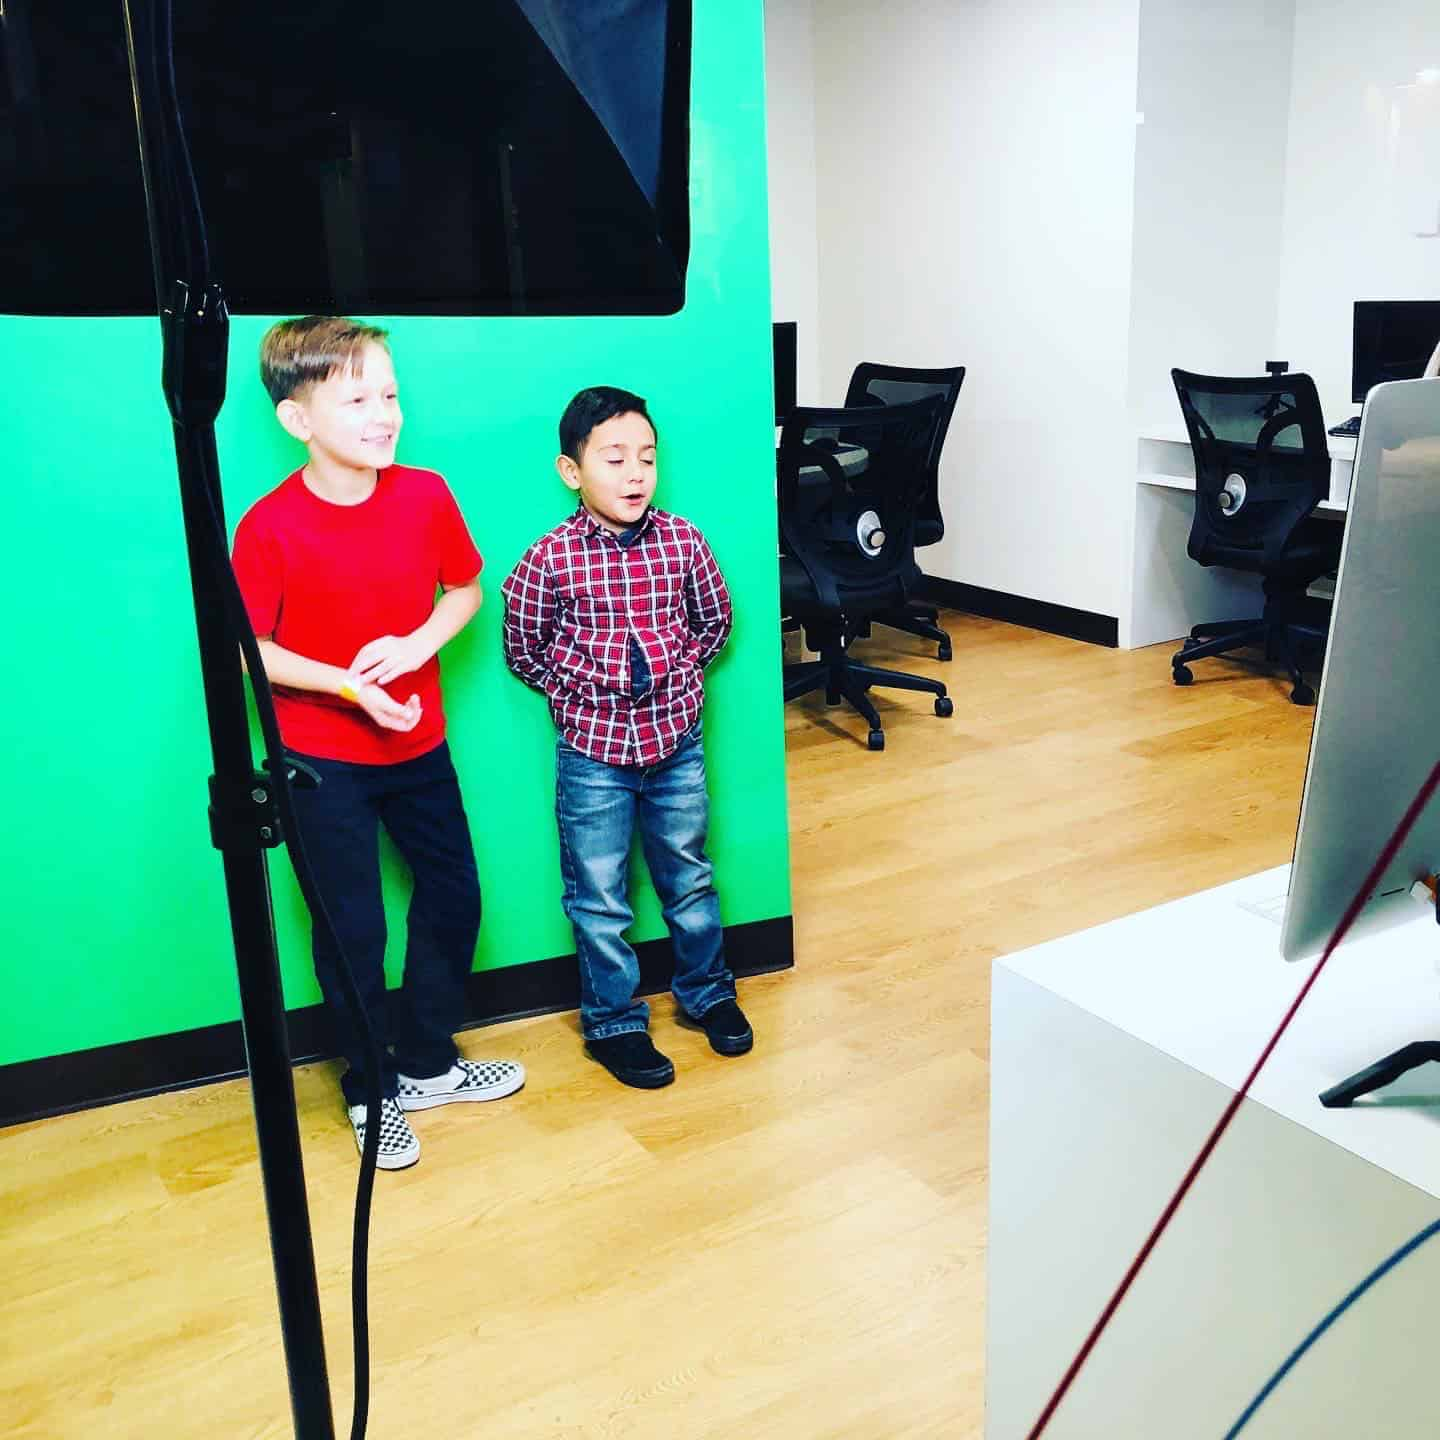 KidZania Dallas media studio with kids